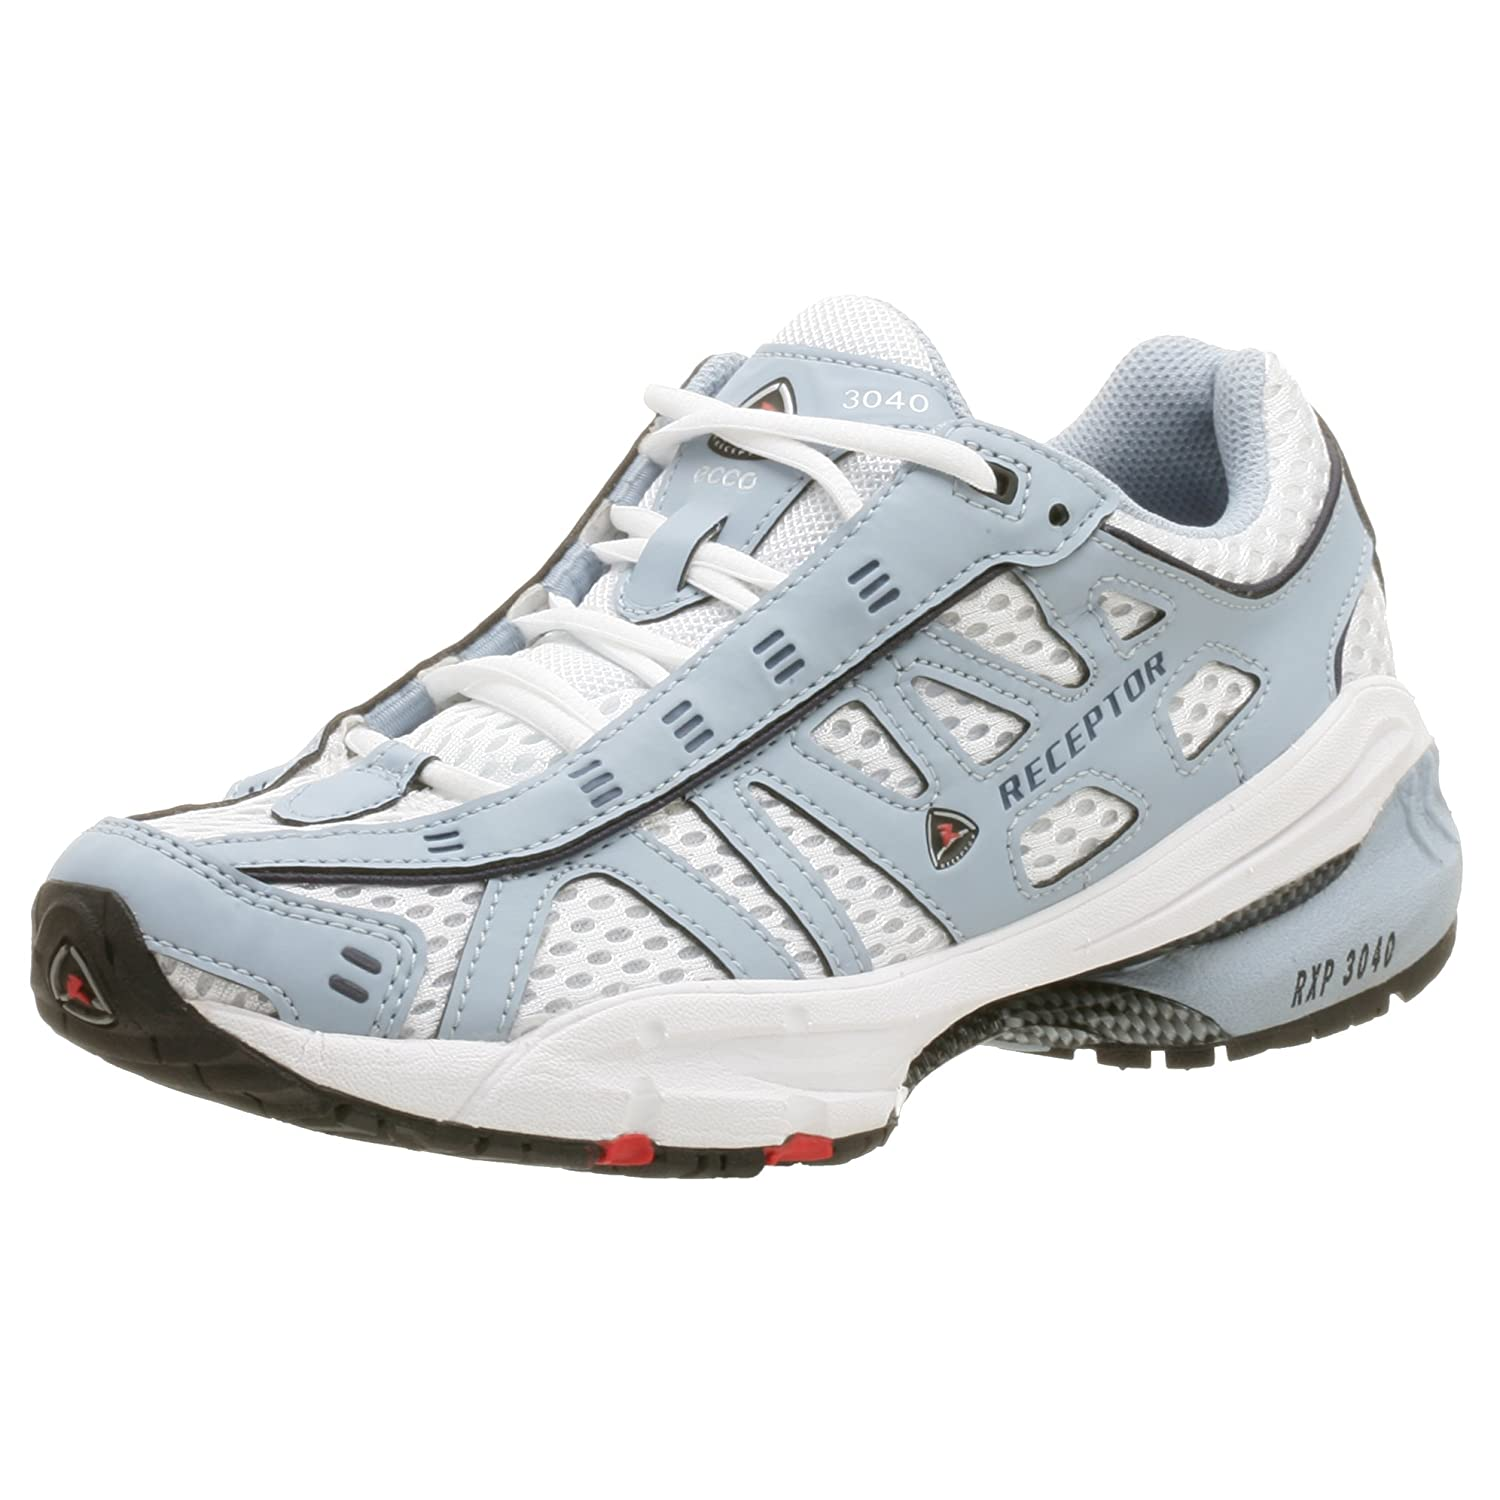 new arrival quite nice purchase cheap Amazon.com   ECCO Performance Women's RXP 3040 Running Shoe ...